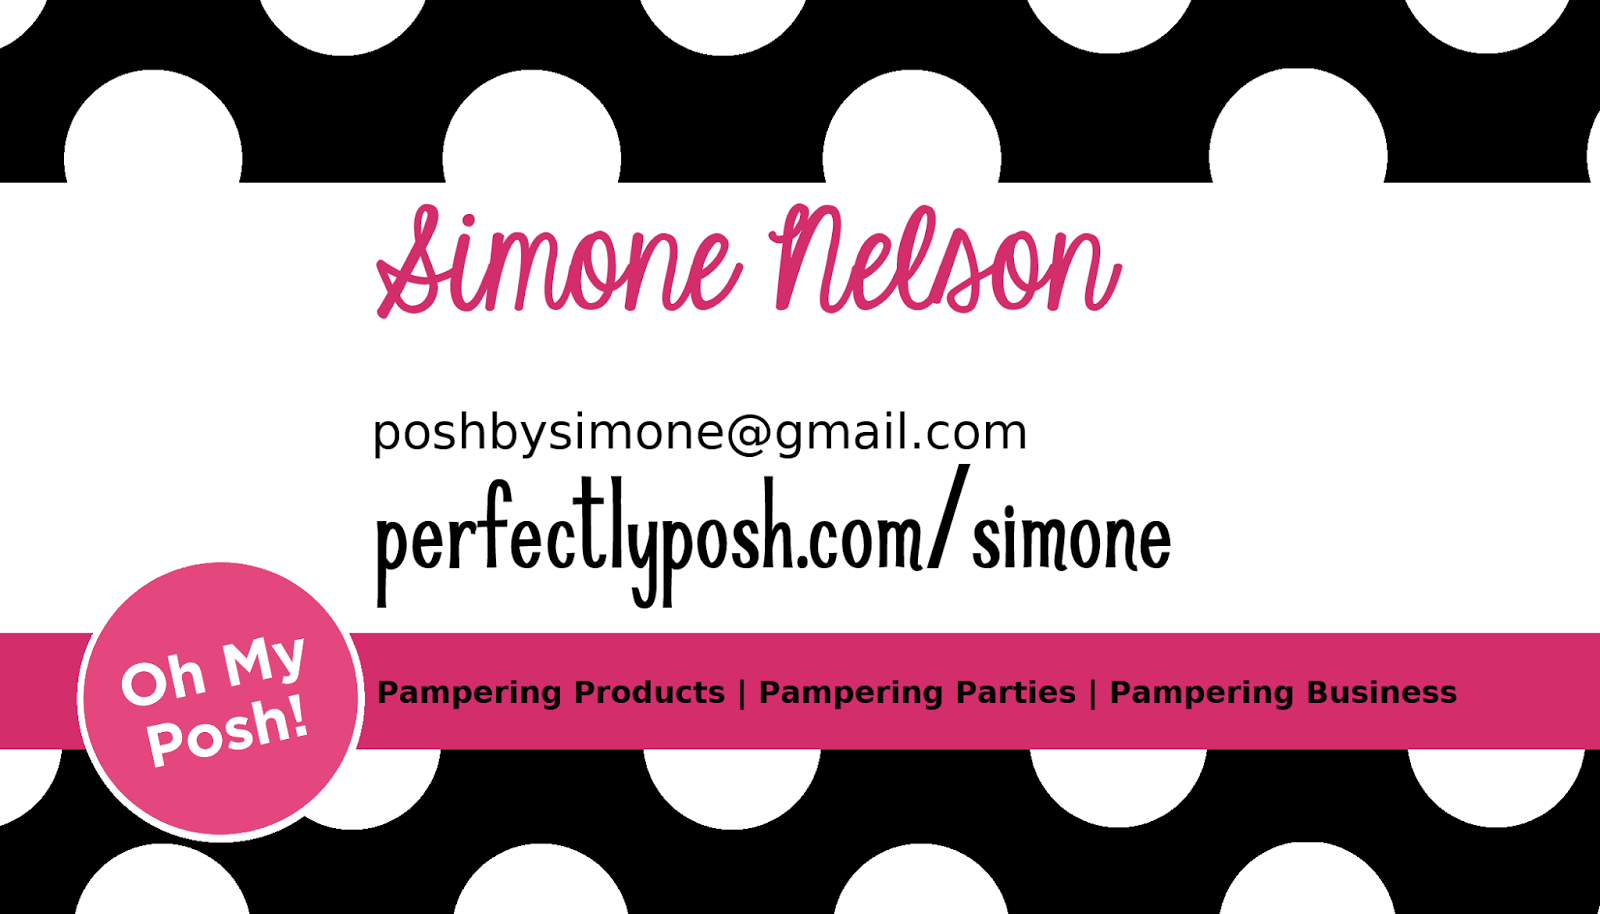 Posh by Simone: Making My Own Business Tools